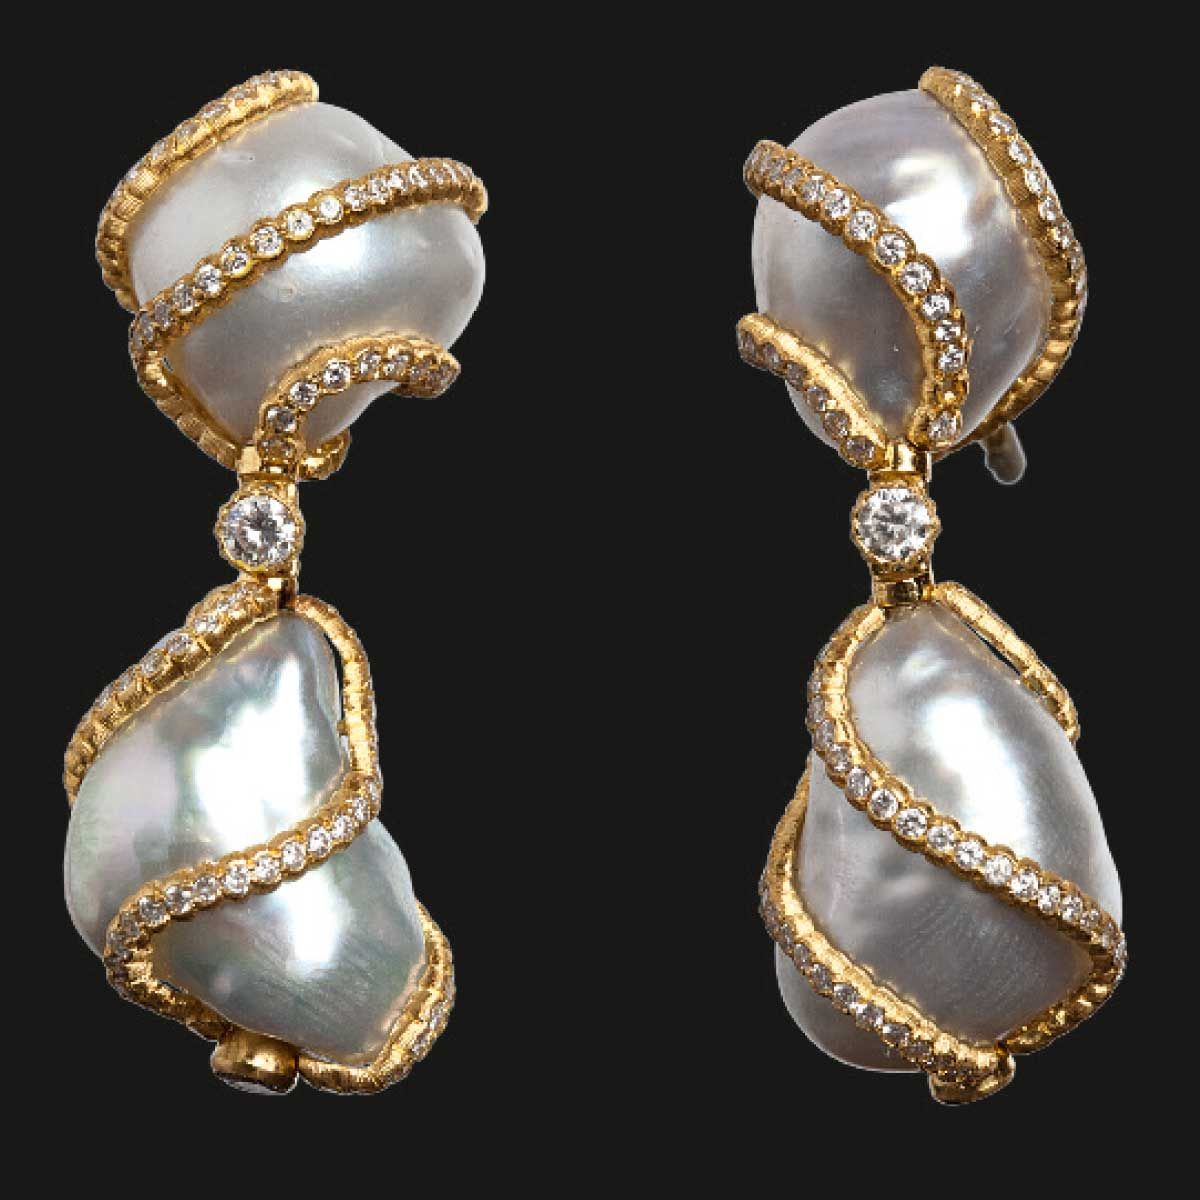 Gianmaria new pendant earrings in yellow gold with diamonds and